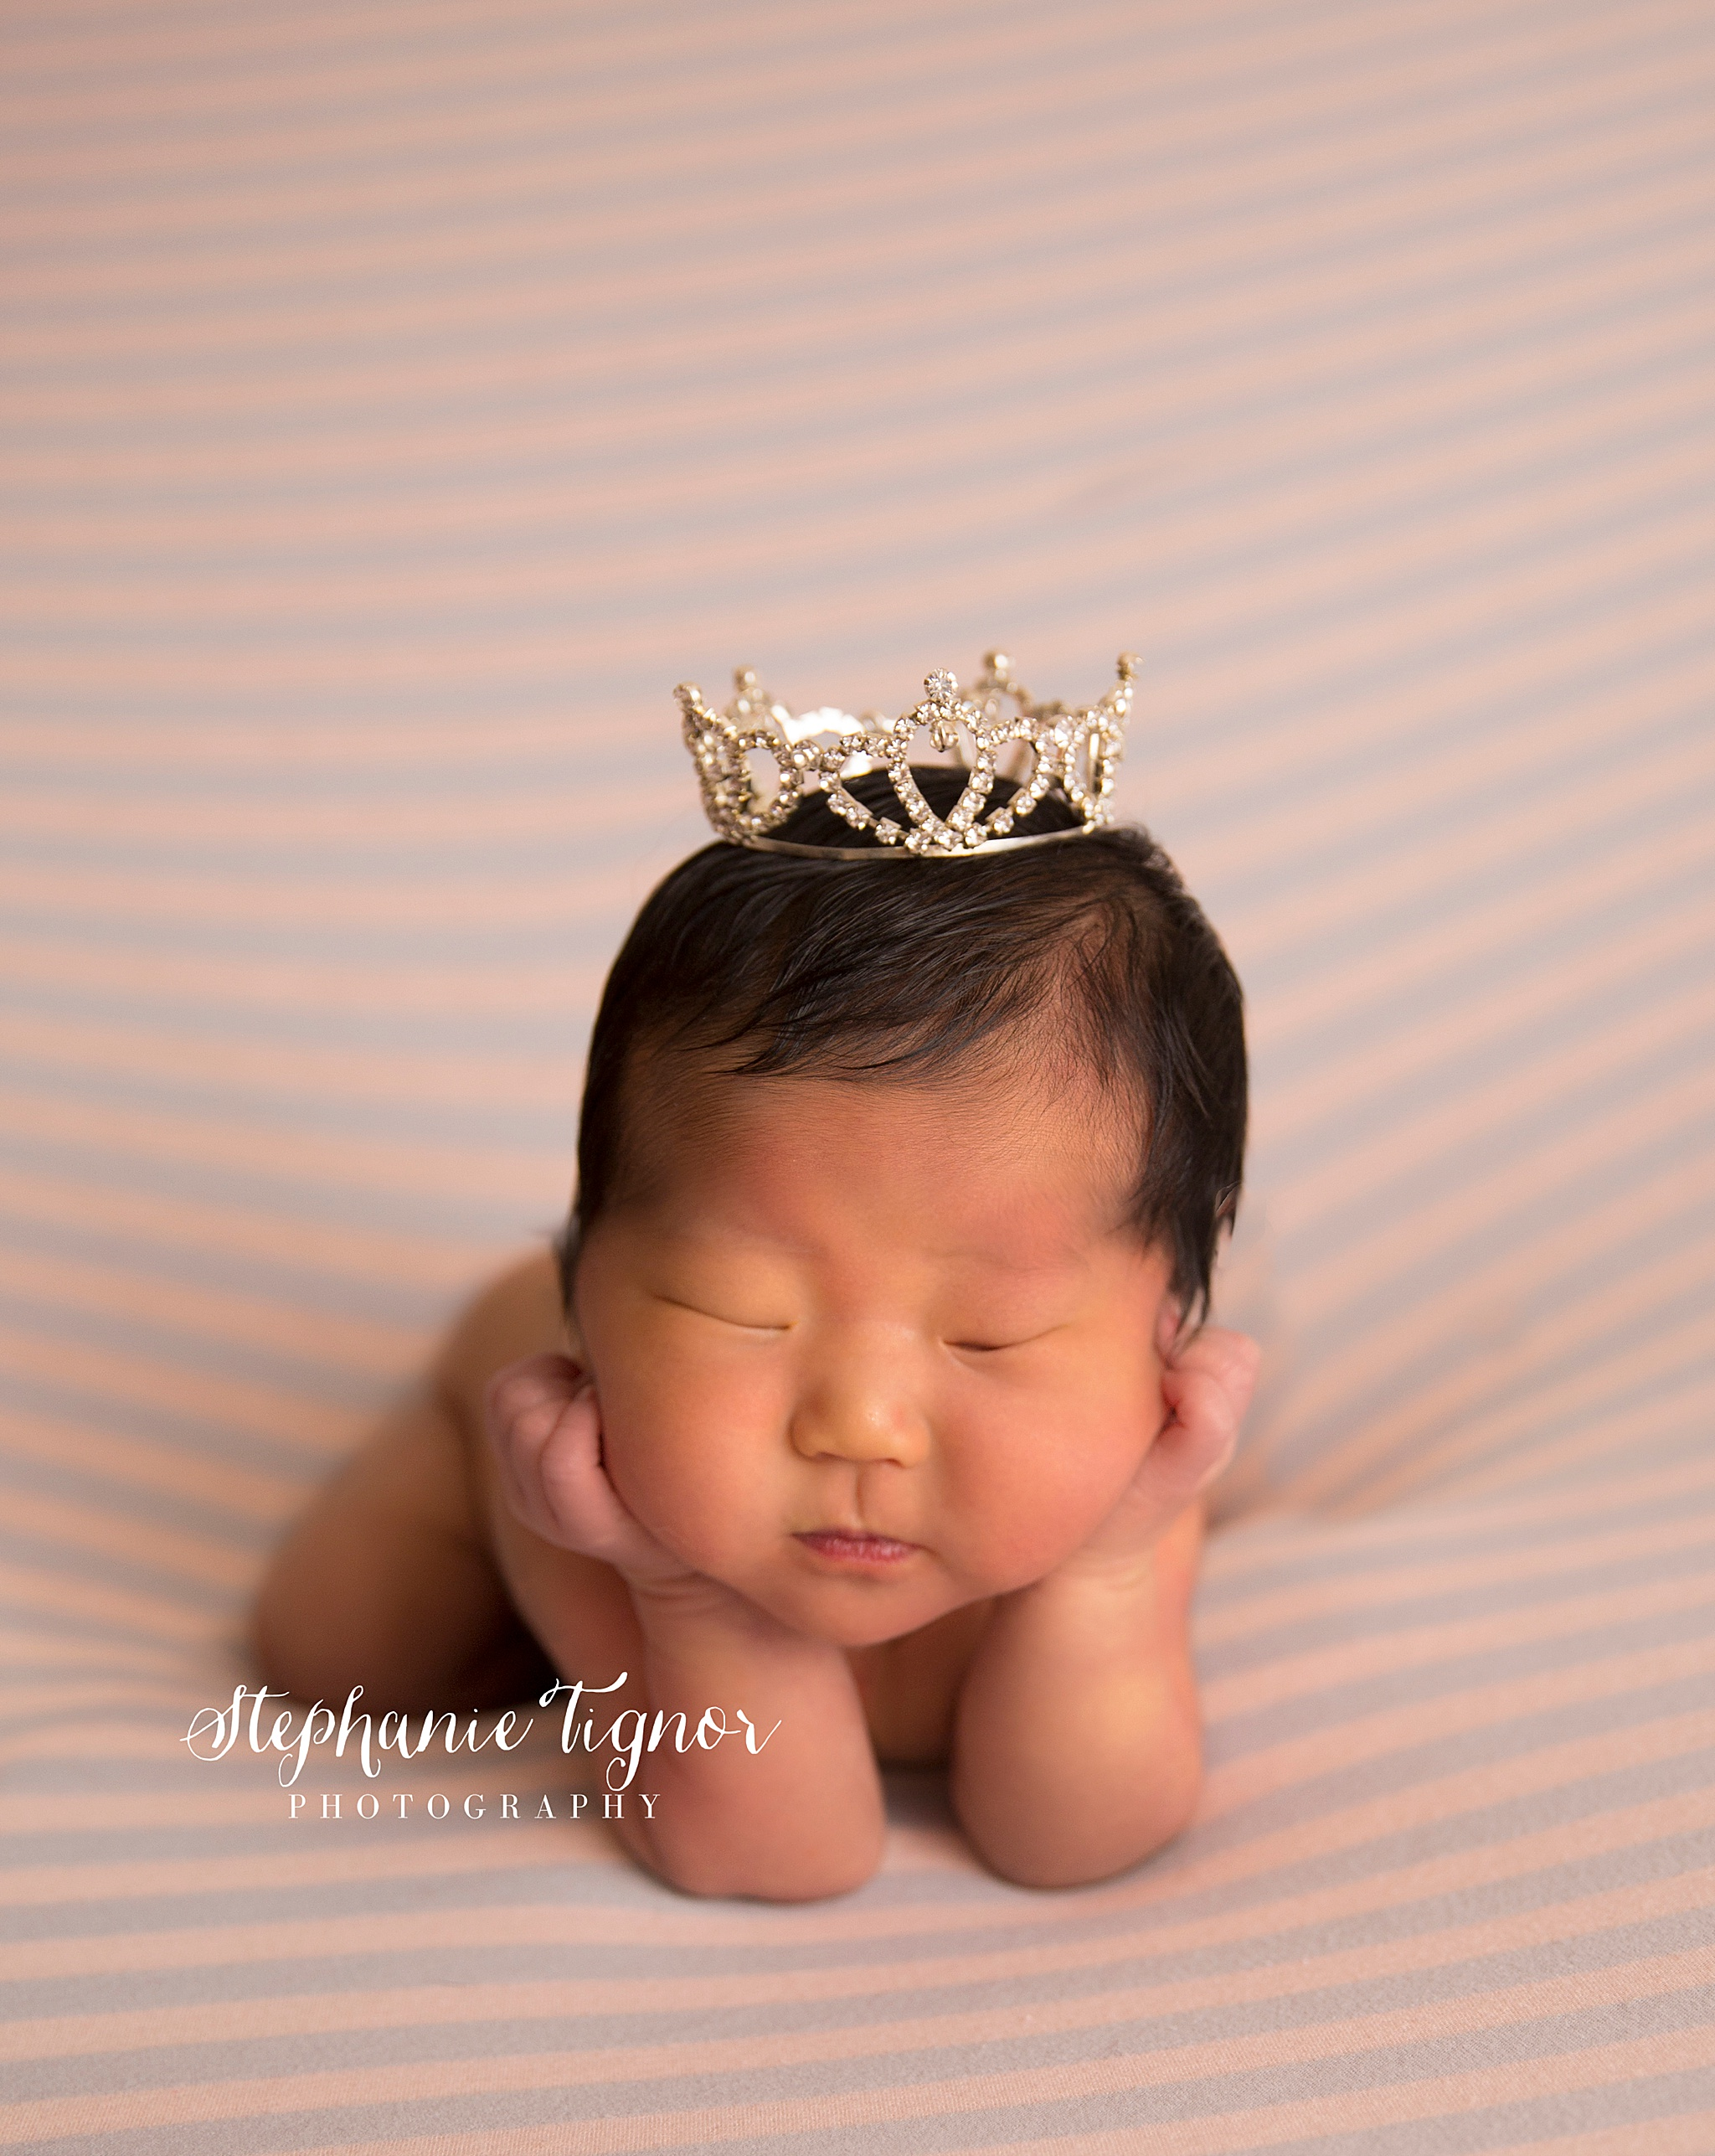 Stephanie Tignor Photography_Newborn Photographer_0081.jpg